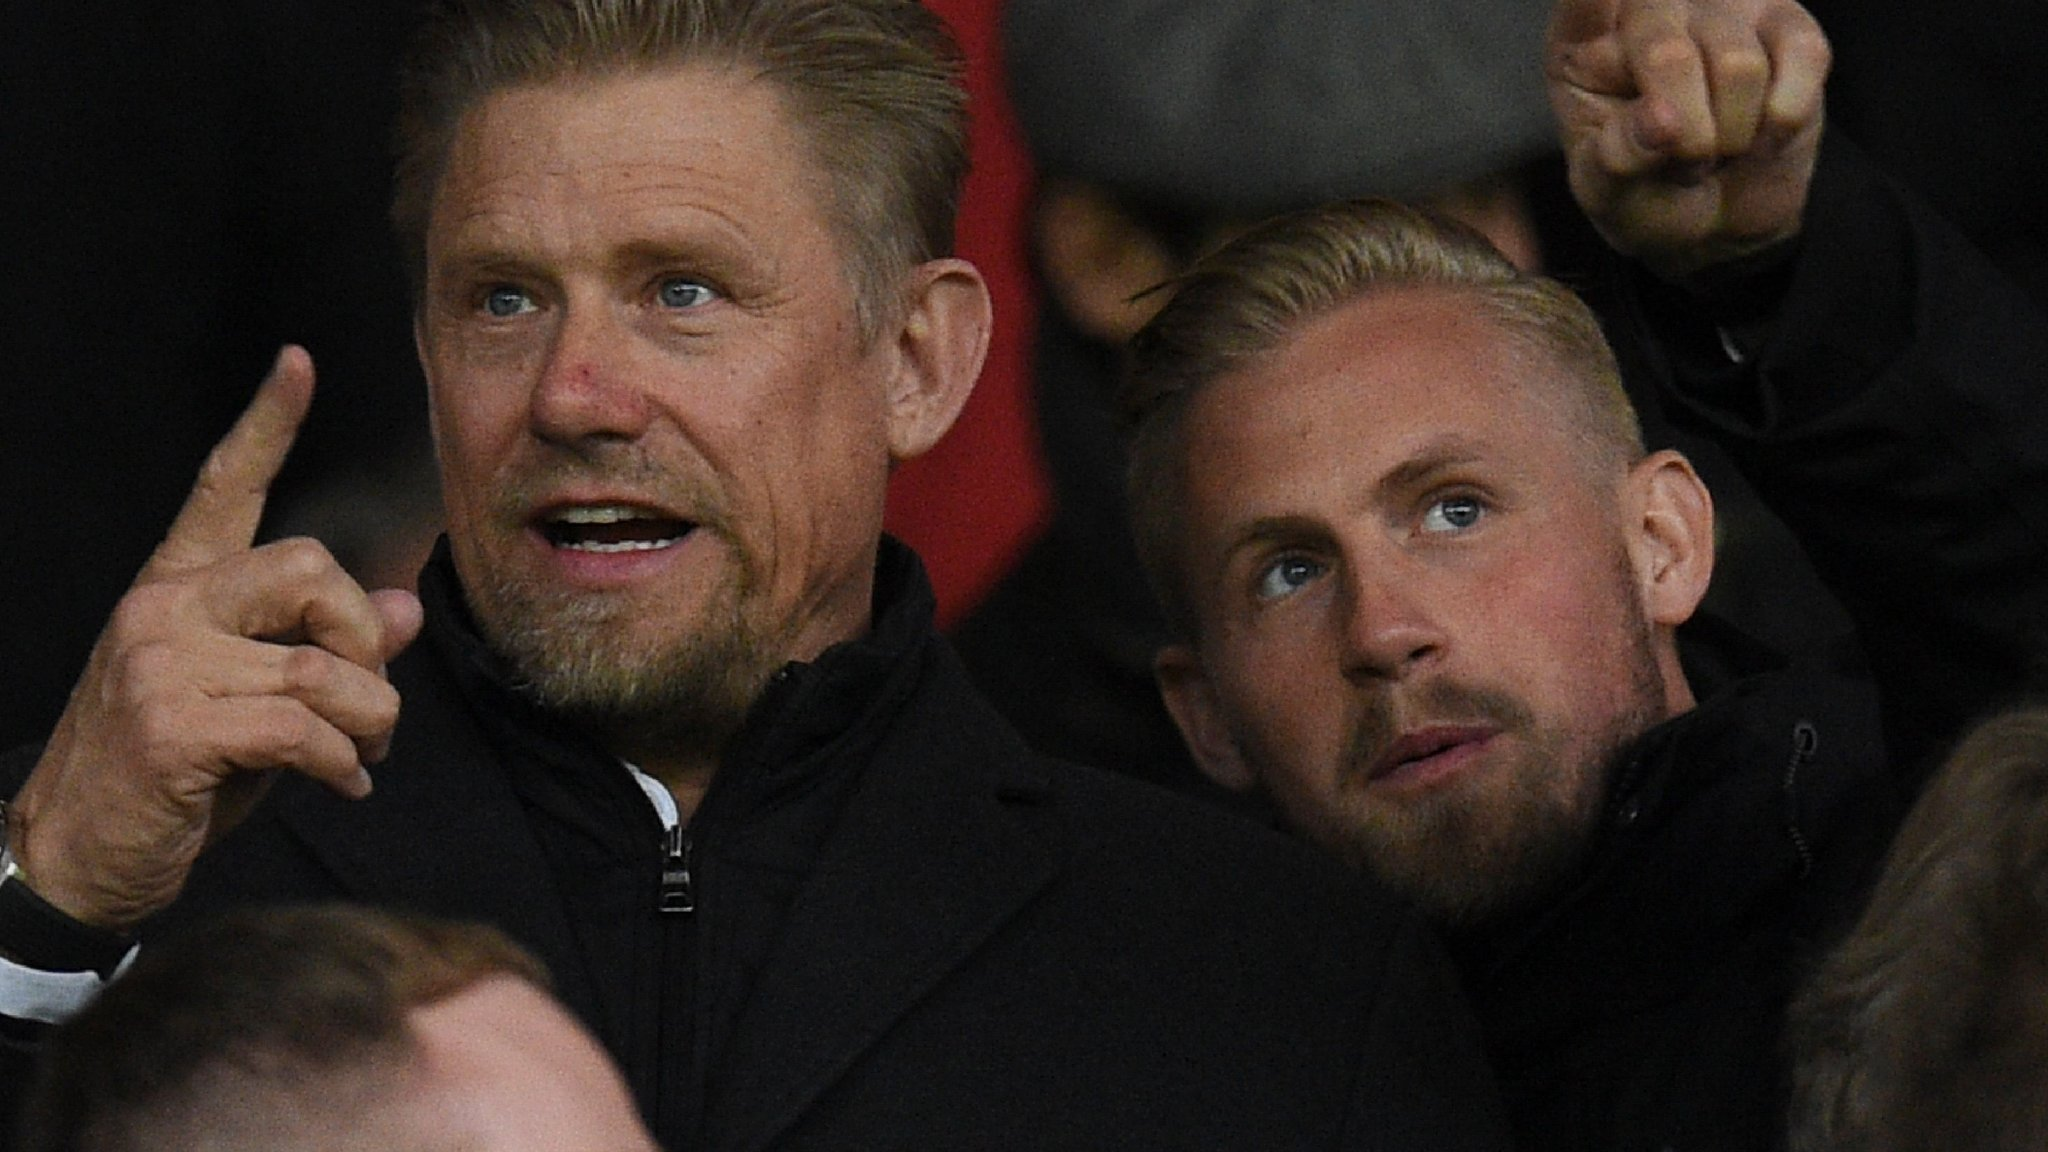 'Proud & angry' - Schmeichel on son Kasper running towards helicopter crash wreckage